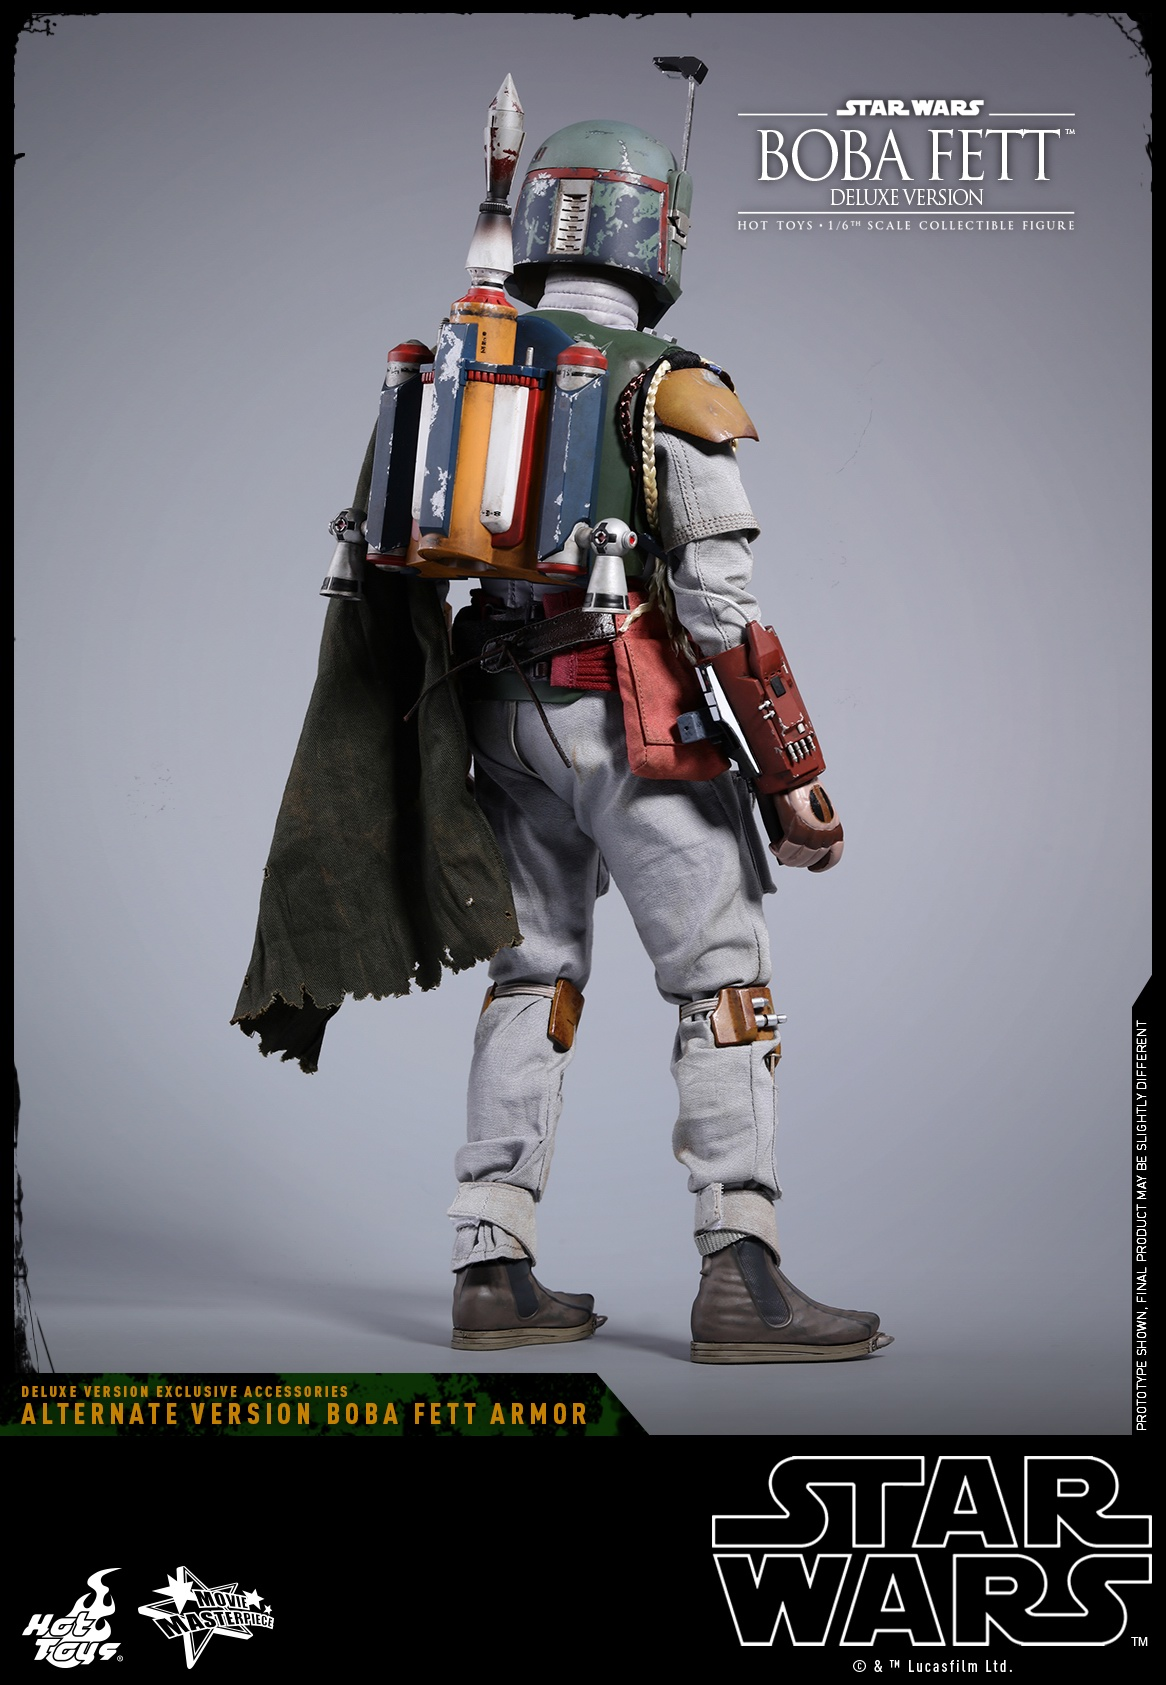 Hot Toys - Star Wars - Boba Fett collectible figure (Deluxe)_PR7.jpg